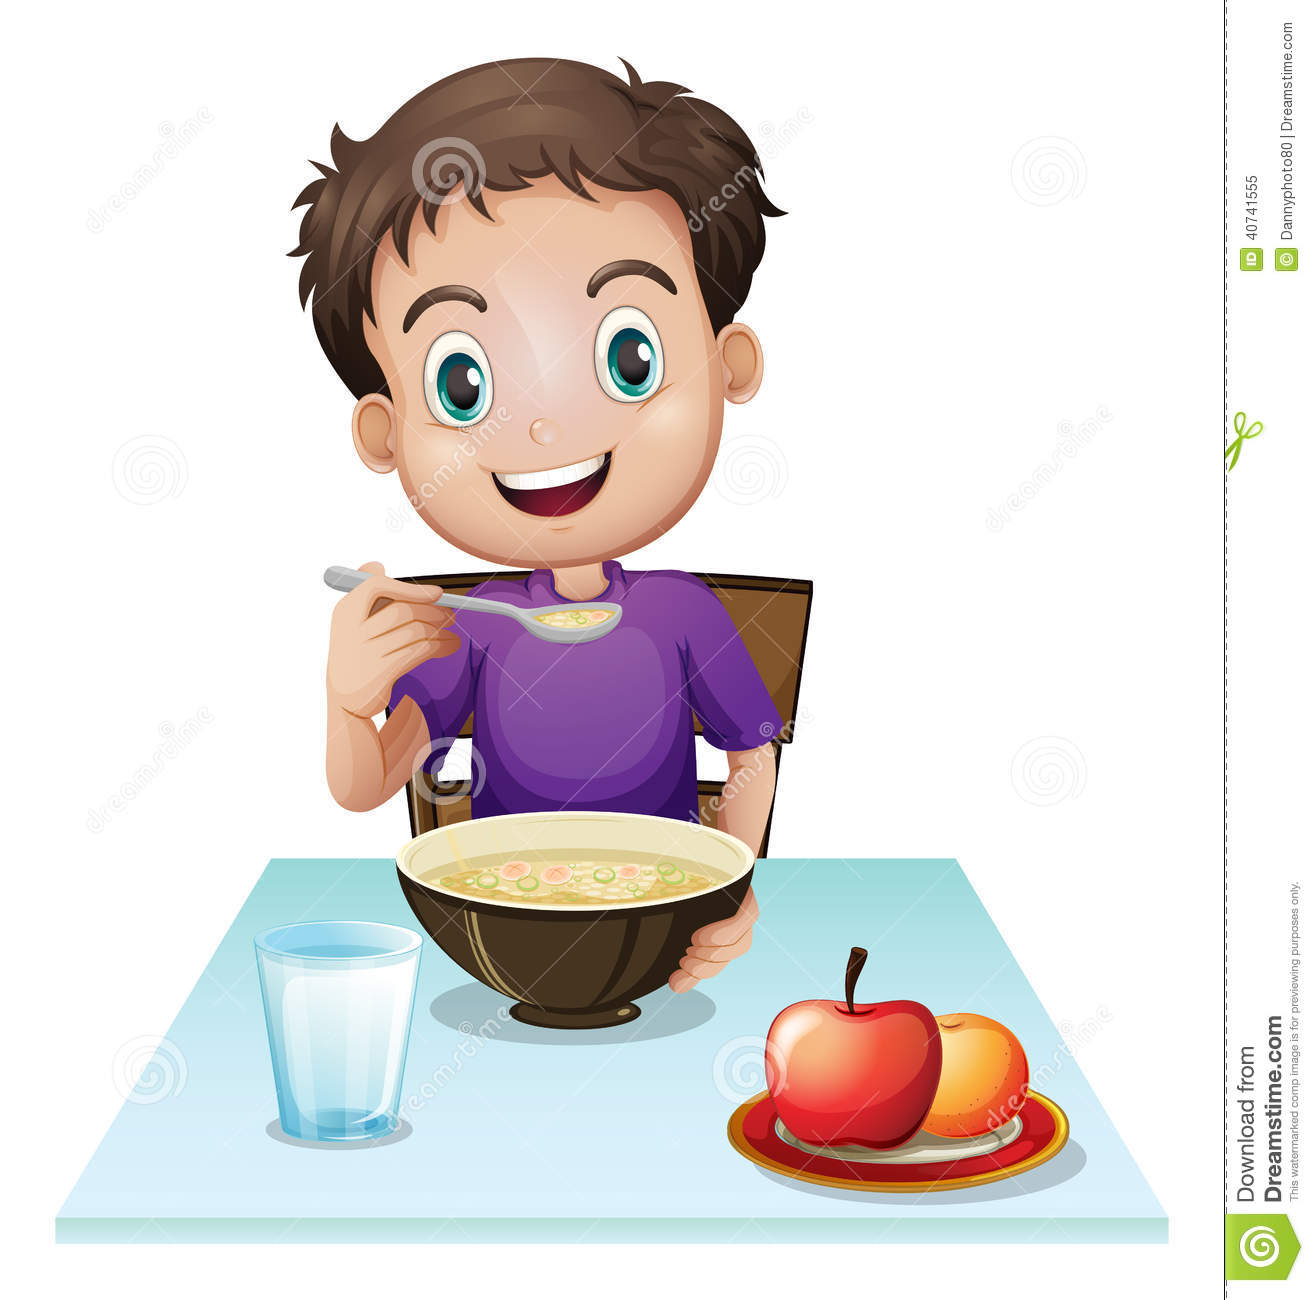 Image Of Good Morning With Hindi Qu: A Boy Eating His Breakfast At The Table Stock Vector